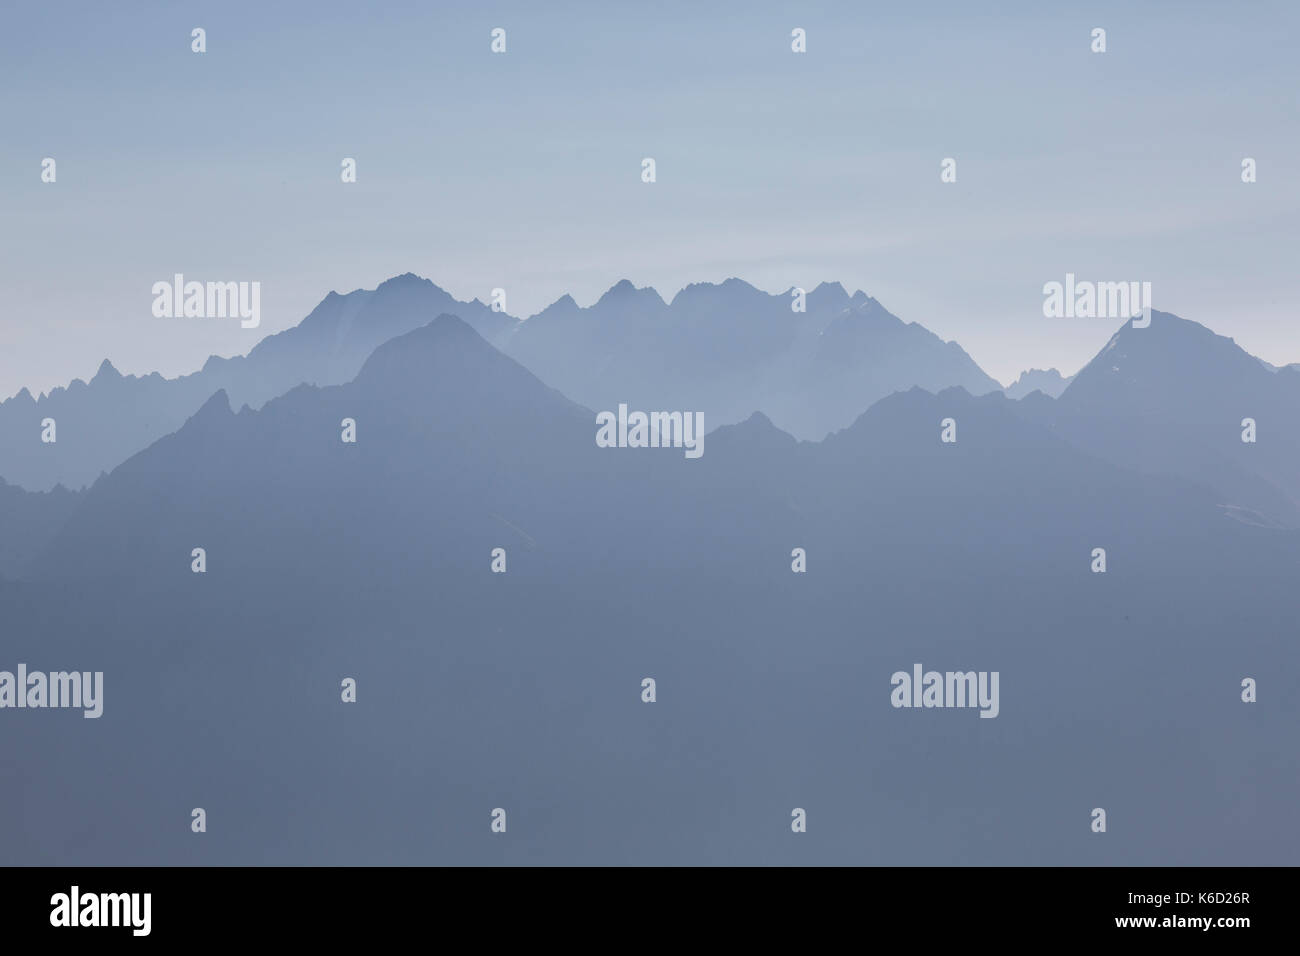 Mountain skyline showing grey coloured peaks and summits in the early morning light. Khaki mountain range in Georgia. - Stock Image